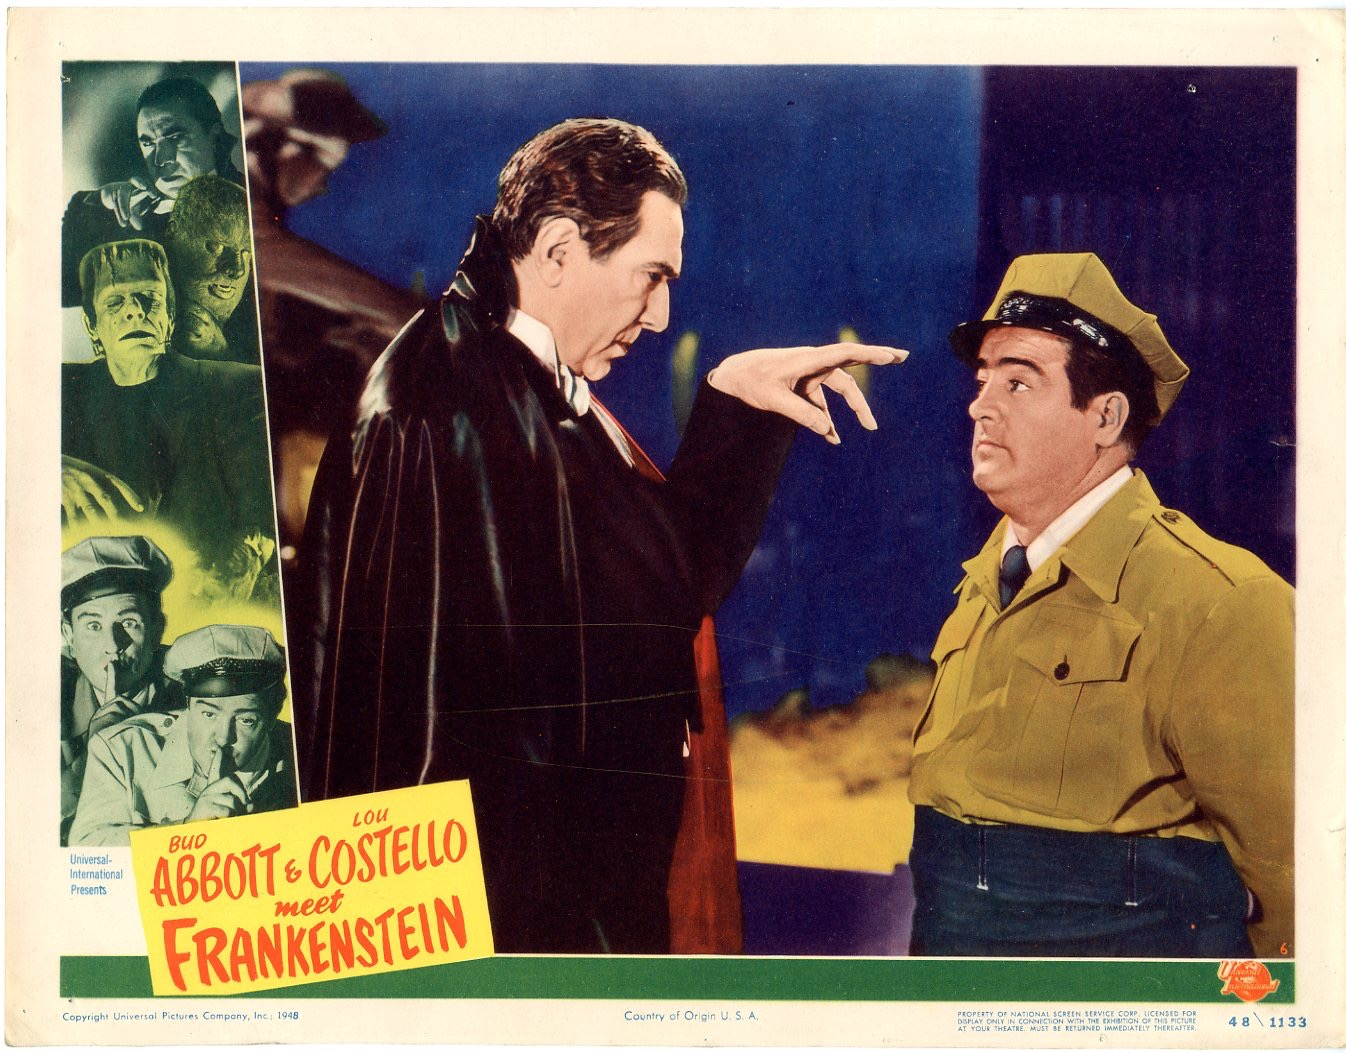 Abbott & Costello Meet Frankenstein 1948 - Primary